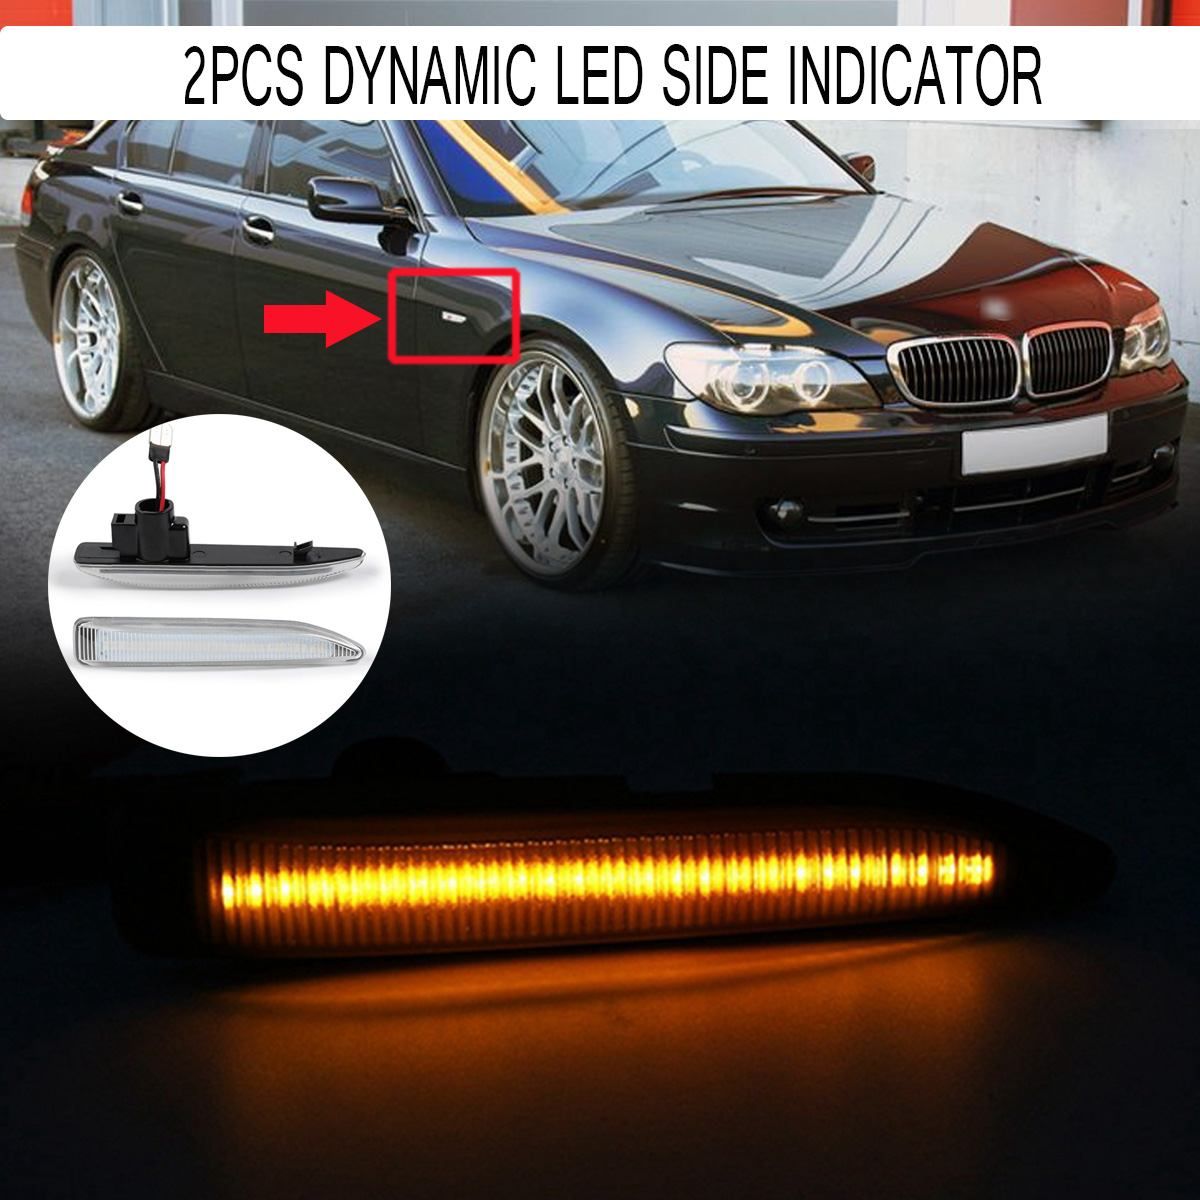 Pair Car LED Side Light Dynamic Flowing Sequential Indicator Lamp Auto Side Marker Light Turn Signal Lamp for BMW E65 E66 E67Pair Car LED Side Light Dynamic Flowing Sequential Indicator Lamp Auto Side Marker Light Turn Signal Lamp for BMW E65 E66 E67